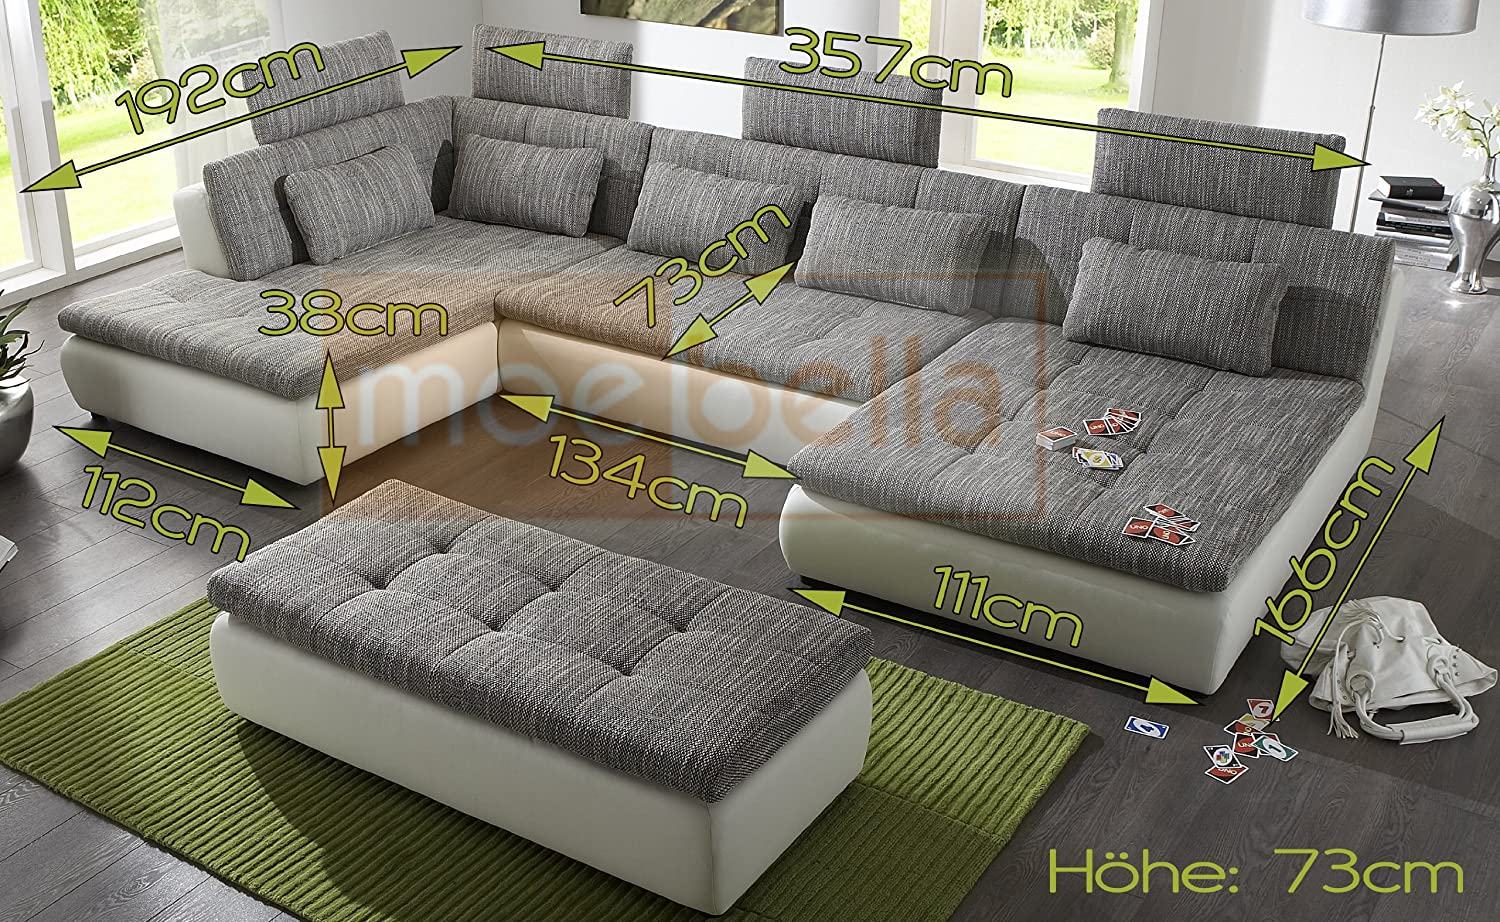 schlafsofa ecksofa leder. Black Bedroom Furniture Sets. Home Design Ideas